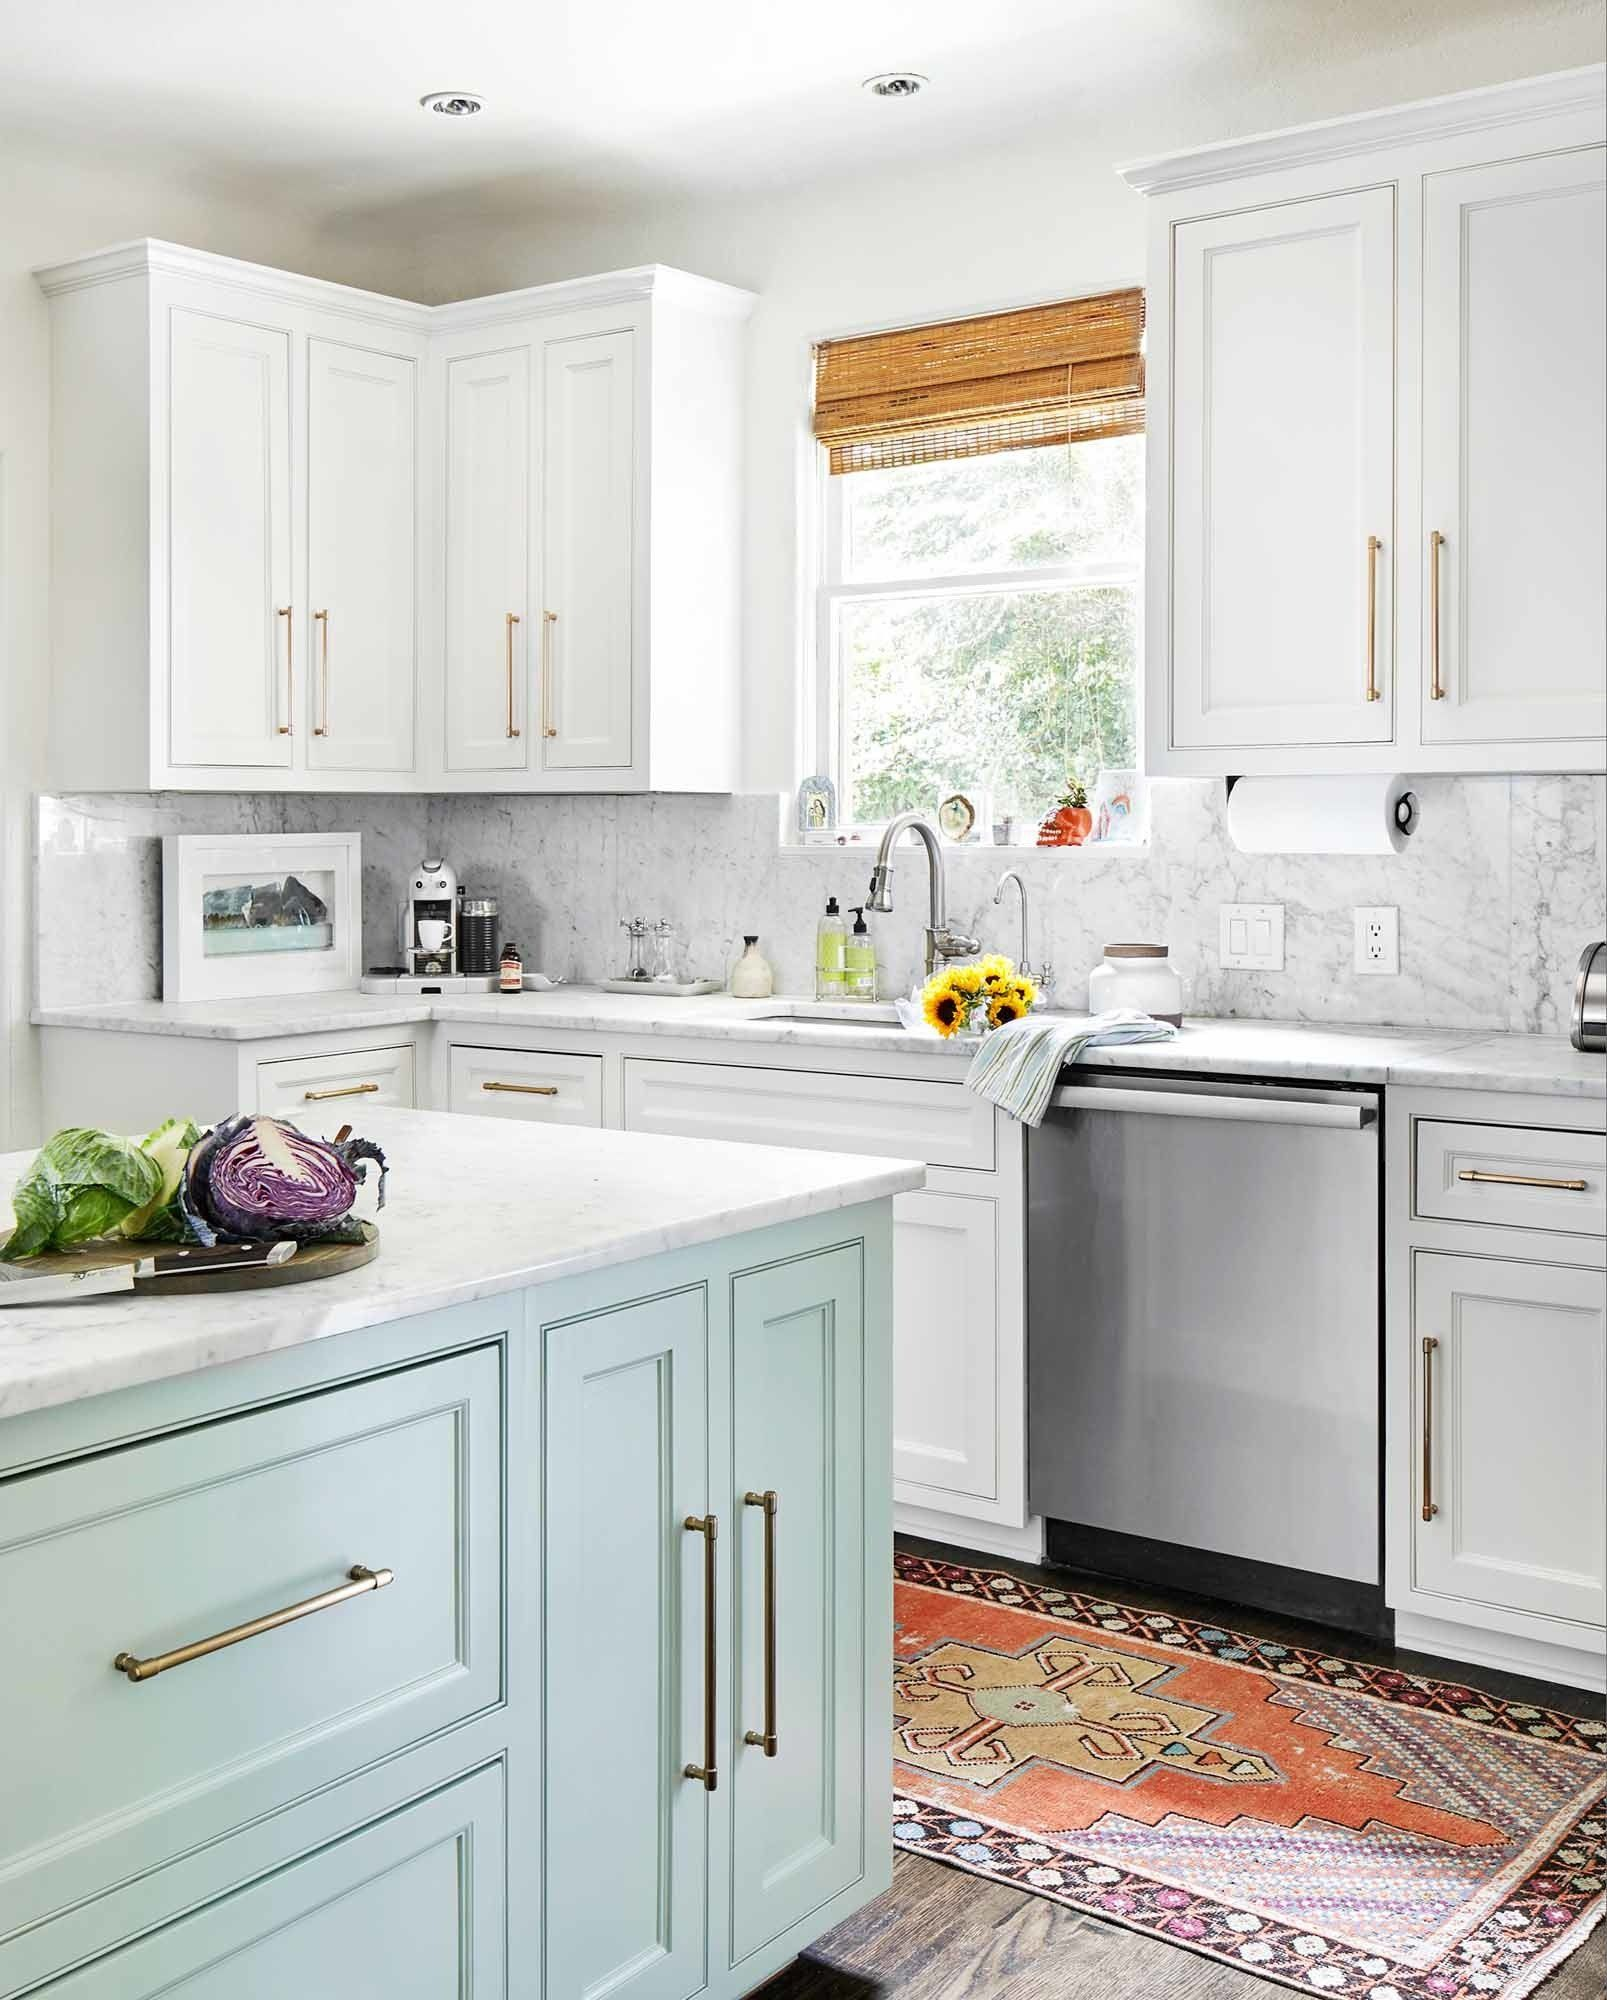 White Dove Painted Kitchen Cabinet Fresh San Antonio Cabinet Painting Project In 2020 Cost Of Kitchen Cabinets Painting Kitchen Cabinets White Kitchen Island Cabinetry